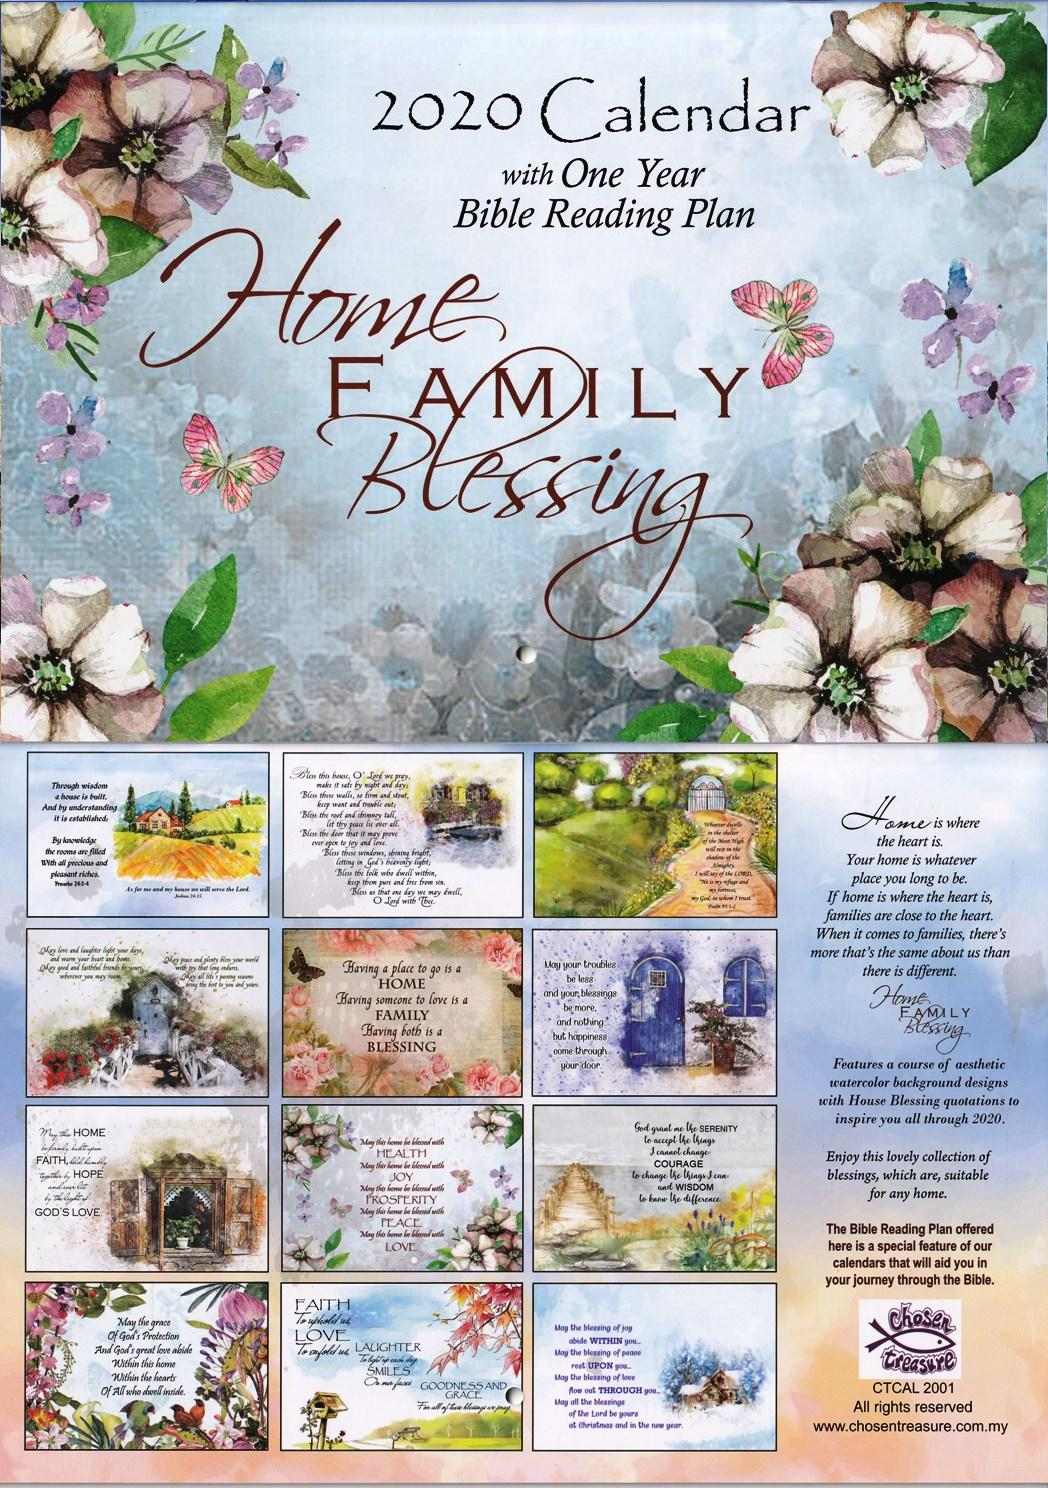 2020 HOME FAMILY BLESSING CALENDAR